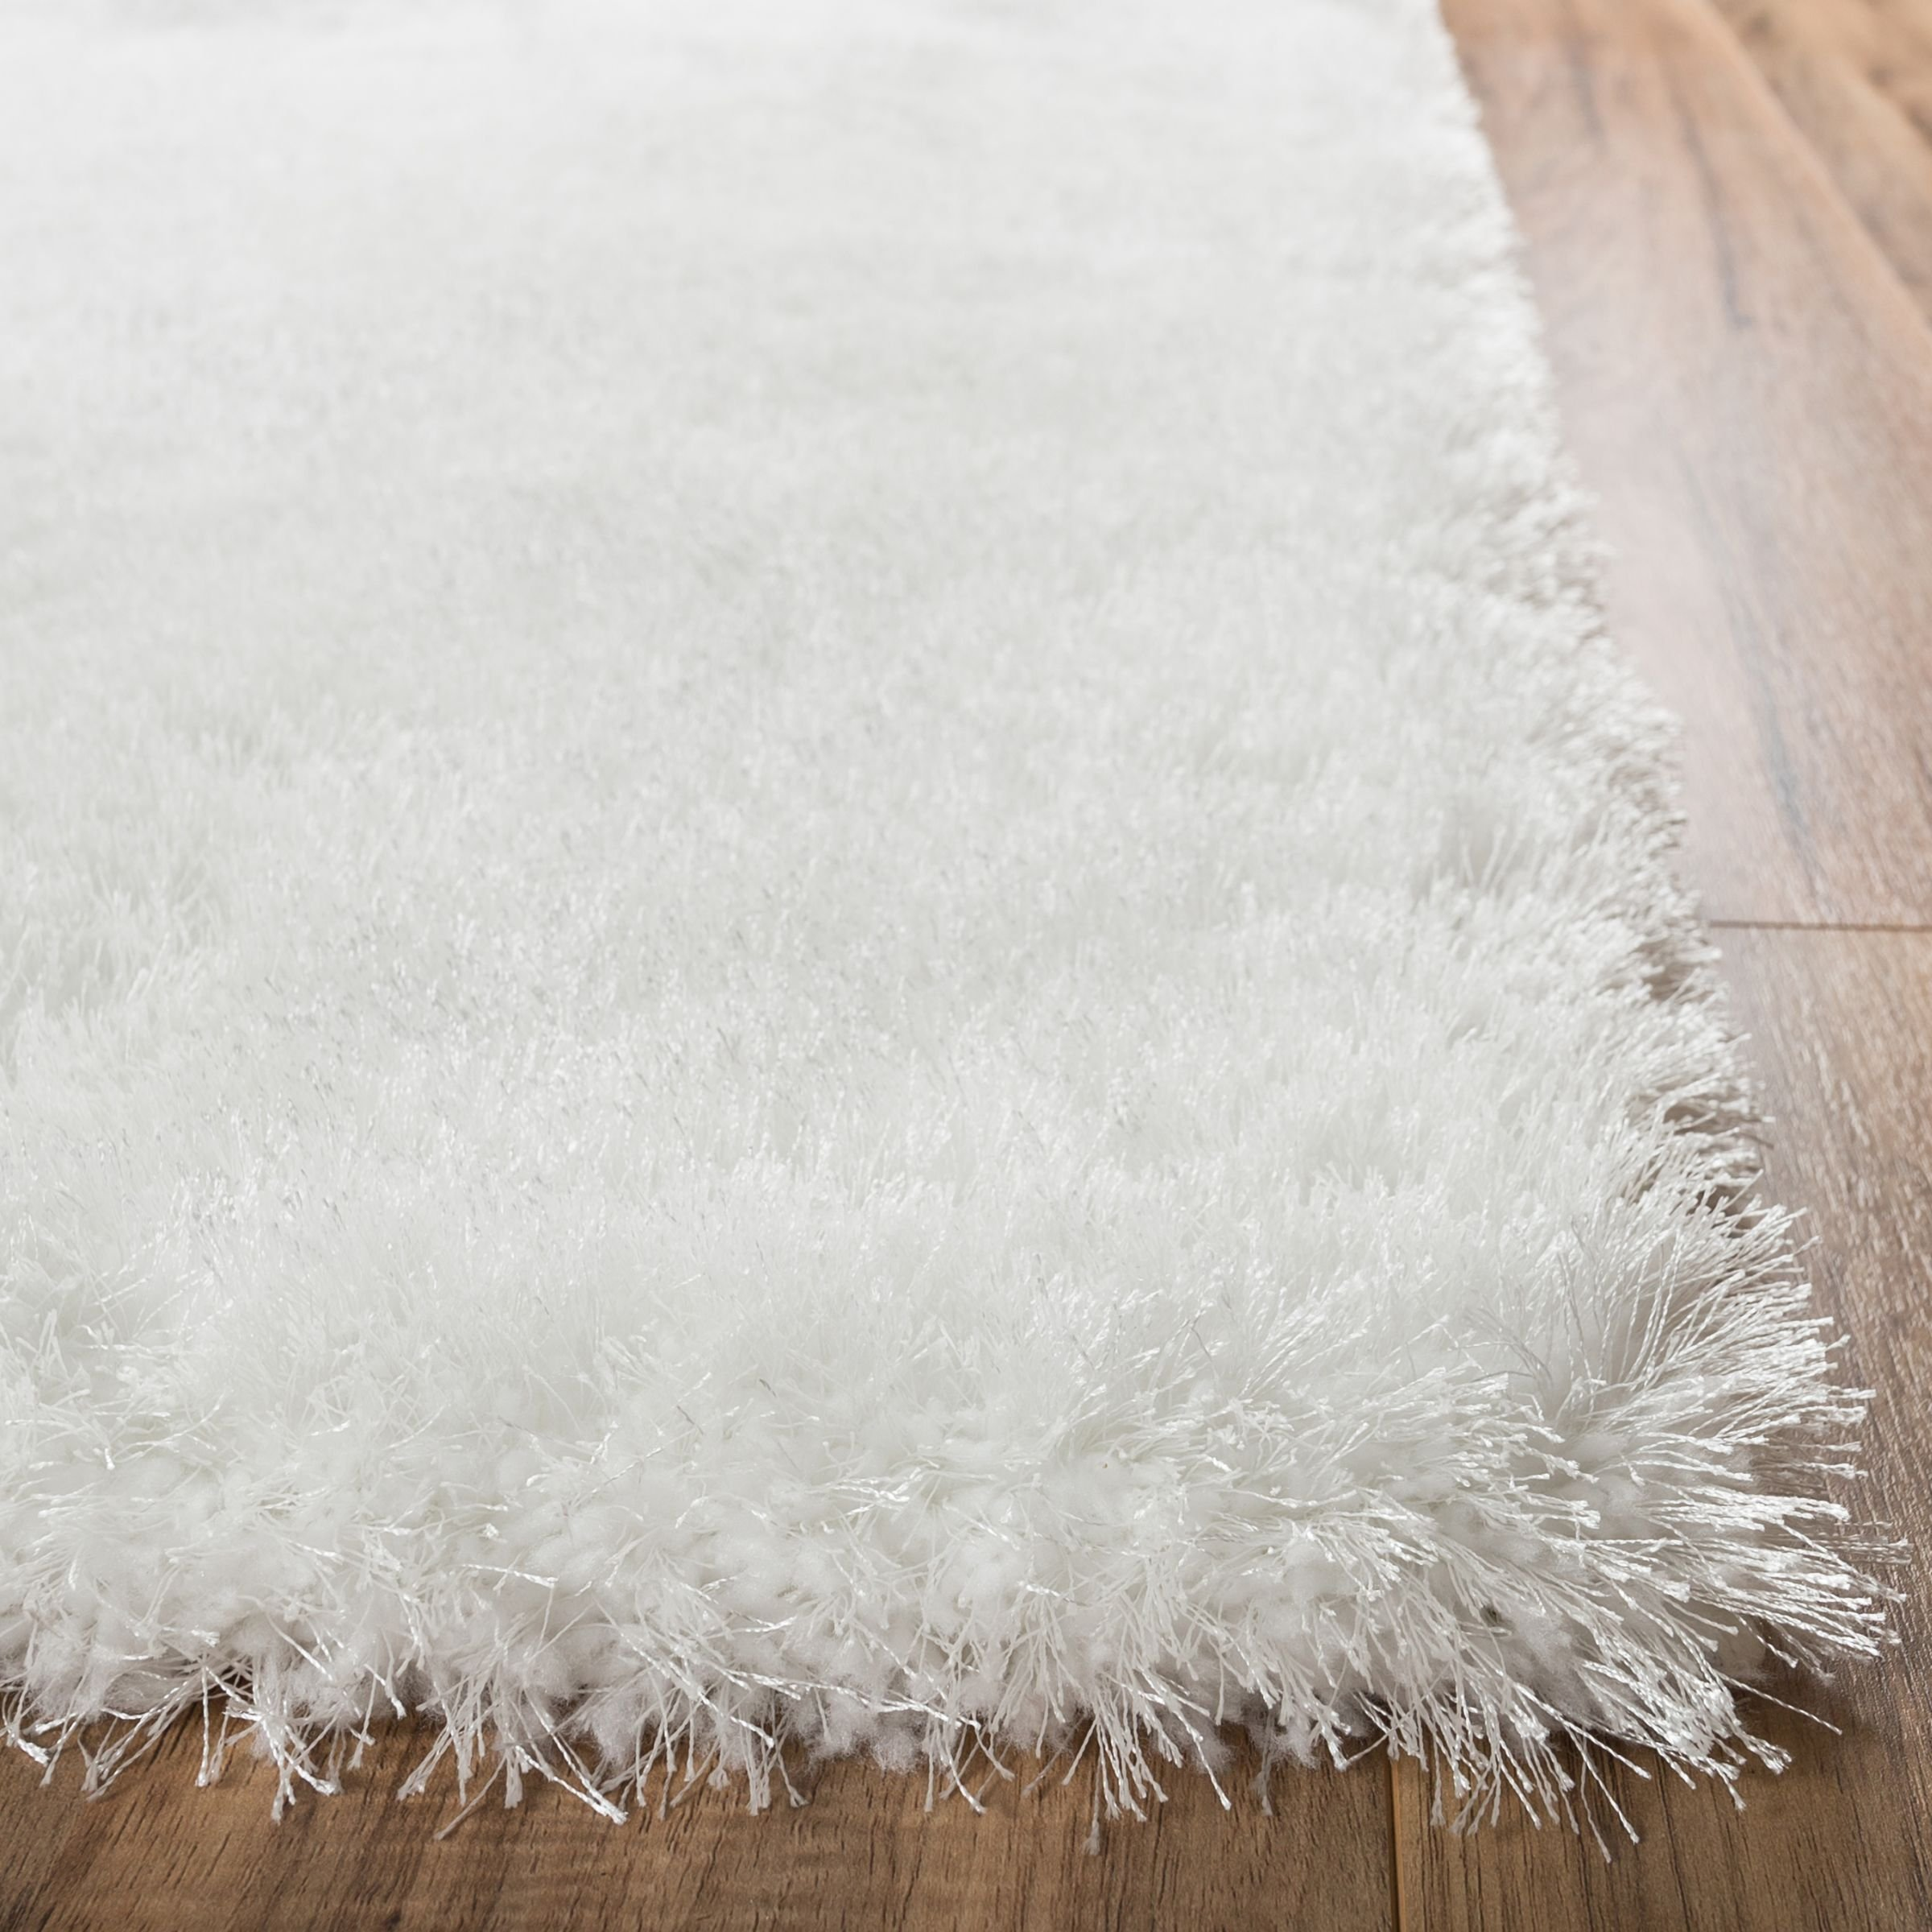 Shimmer Shag Snow White Solid Plain Modern Luster Ultra Thick Soft Plush Area Rug 7 x 10 ( 6'7'' x 9'10'' ) Contemporary Retro Polyester Textured 2'' Pile Yarn Easy Clean Stain Fade Resistant by Well Woven (Image #2)